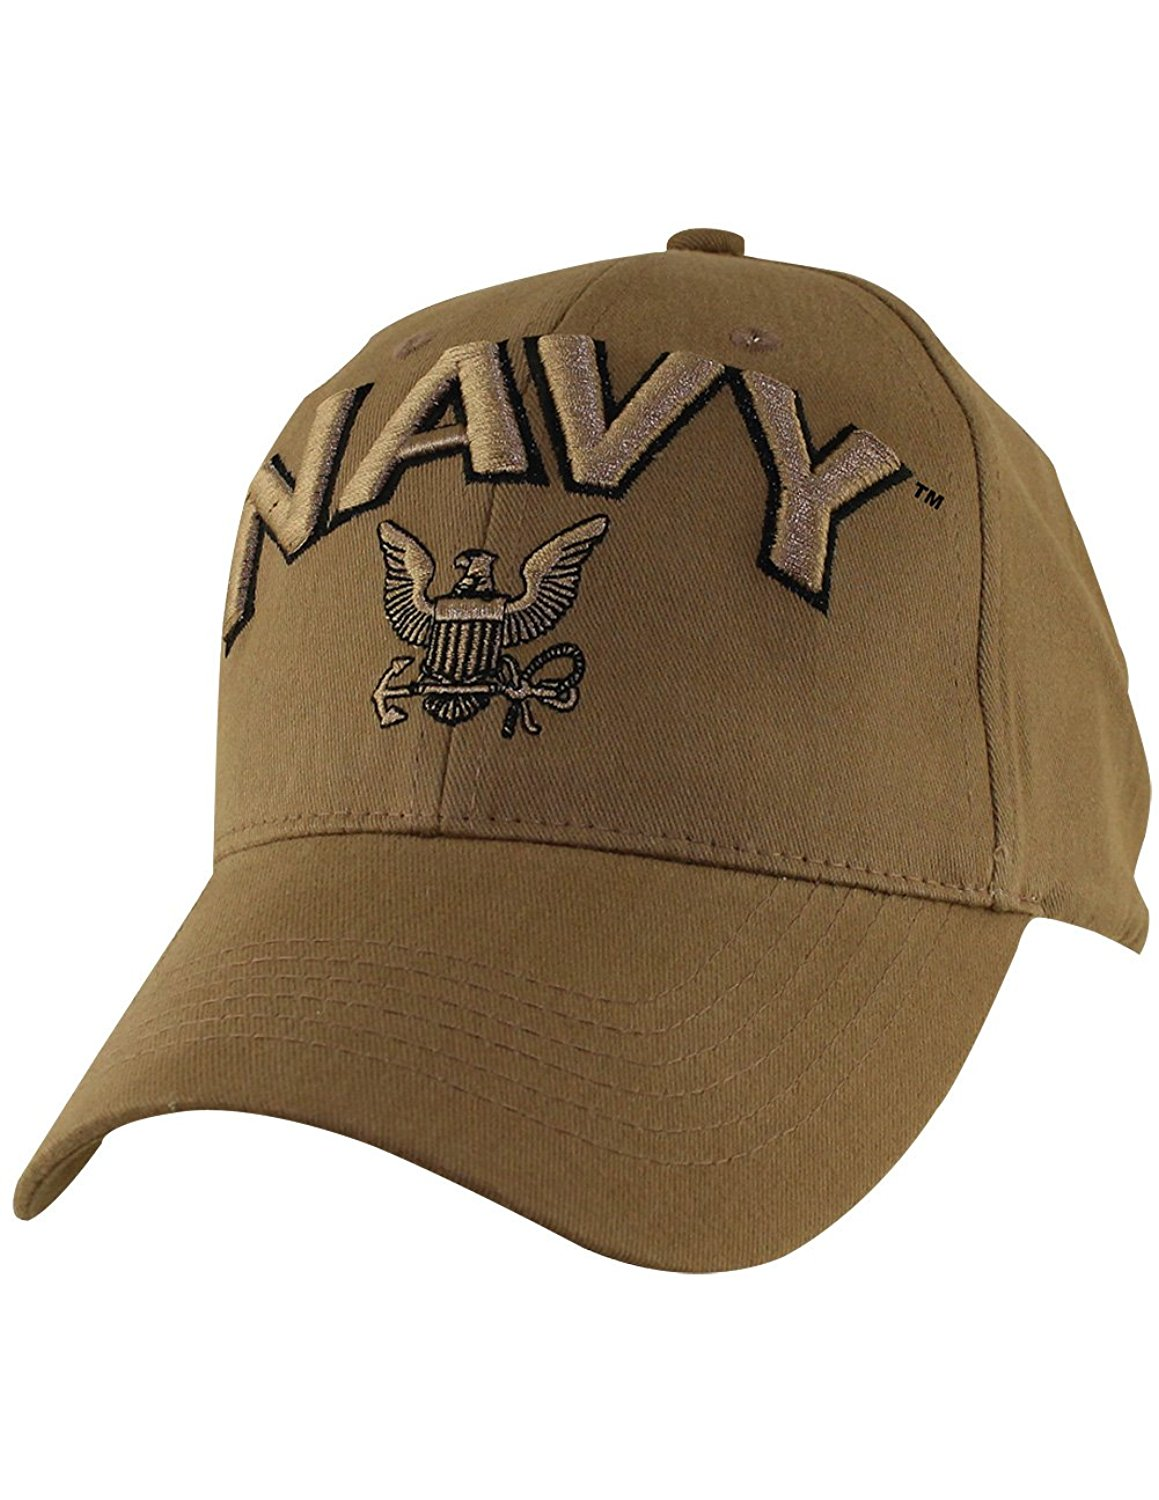 Coyote Military Baseball Caps 100% Cotton w/Embroidered Emblem US Navy